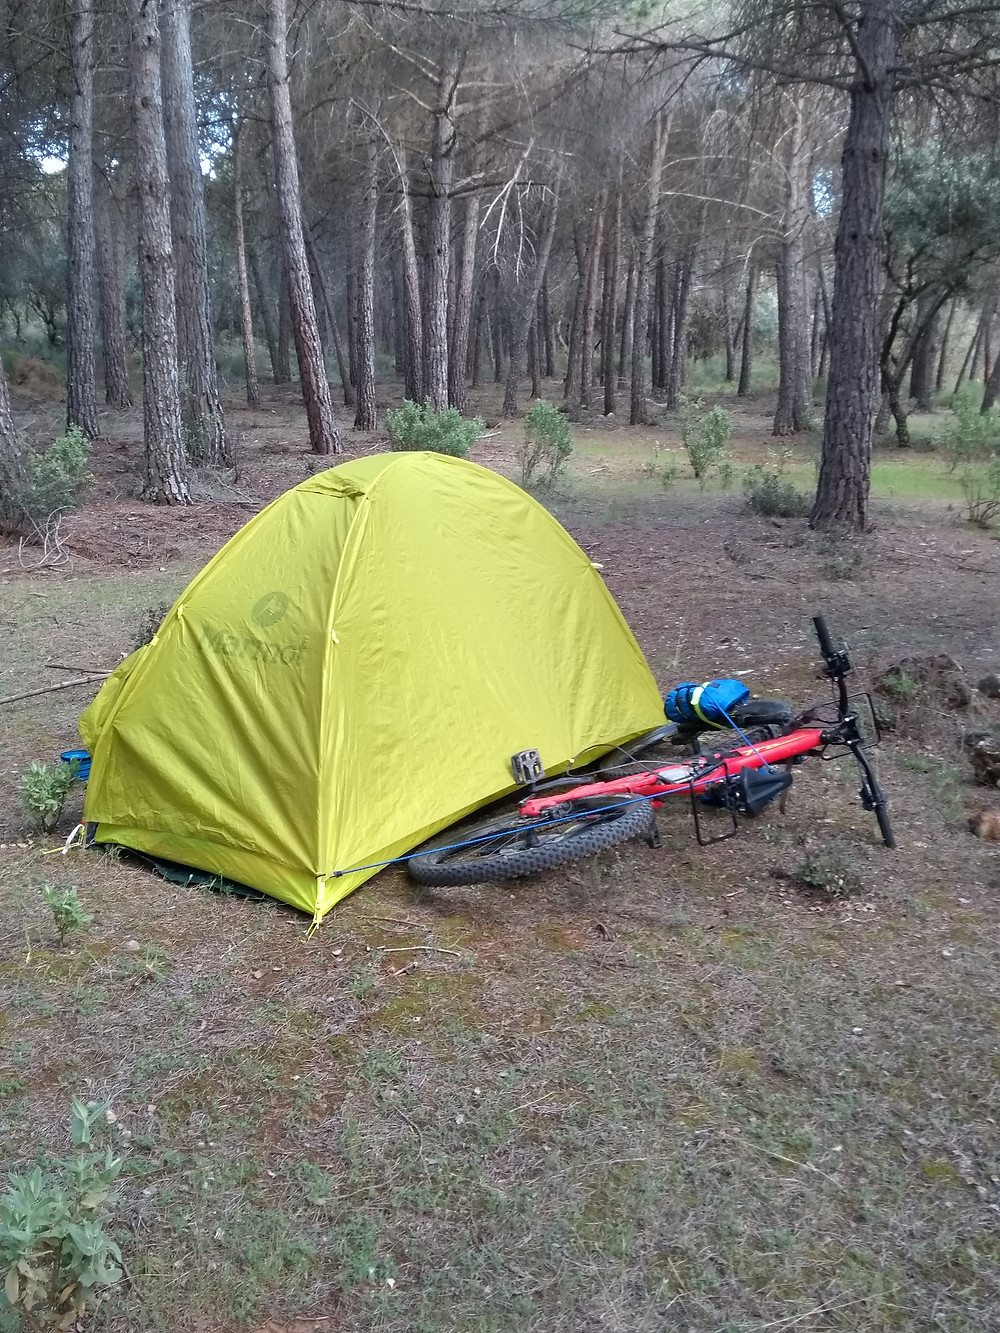 The pitched up tent with my bike tied to it